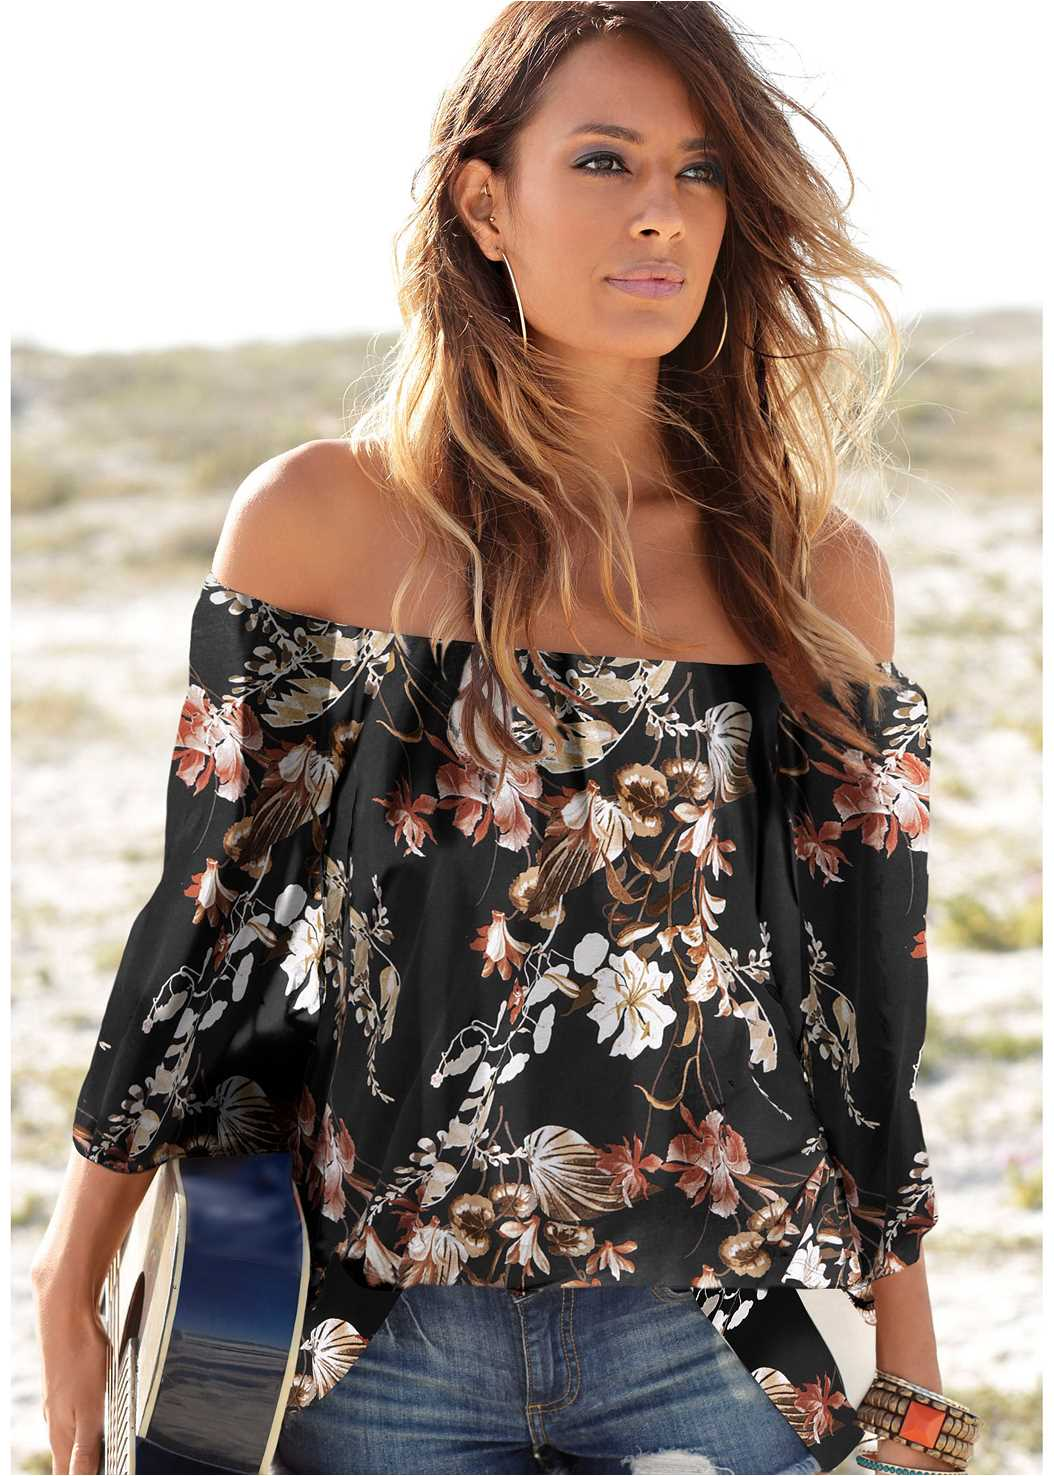 Off Shoulder Floral Top,Ripped Capri Jeans,Double Strap Cork Wedge,Beaded Dreamcatcher Earrings